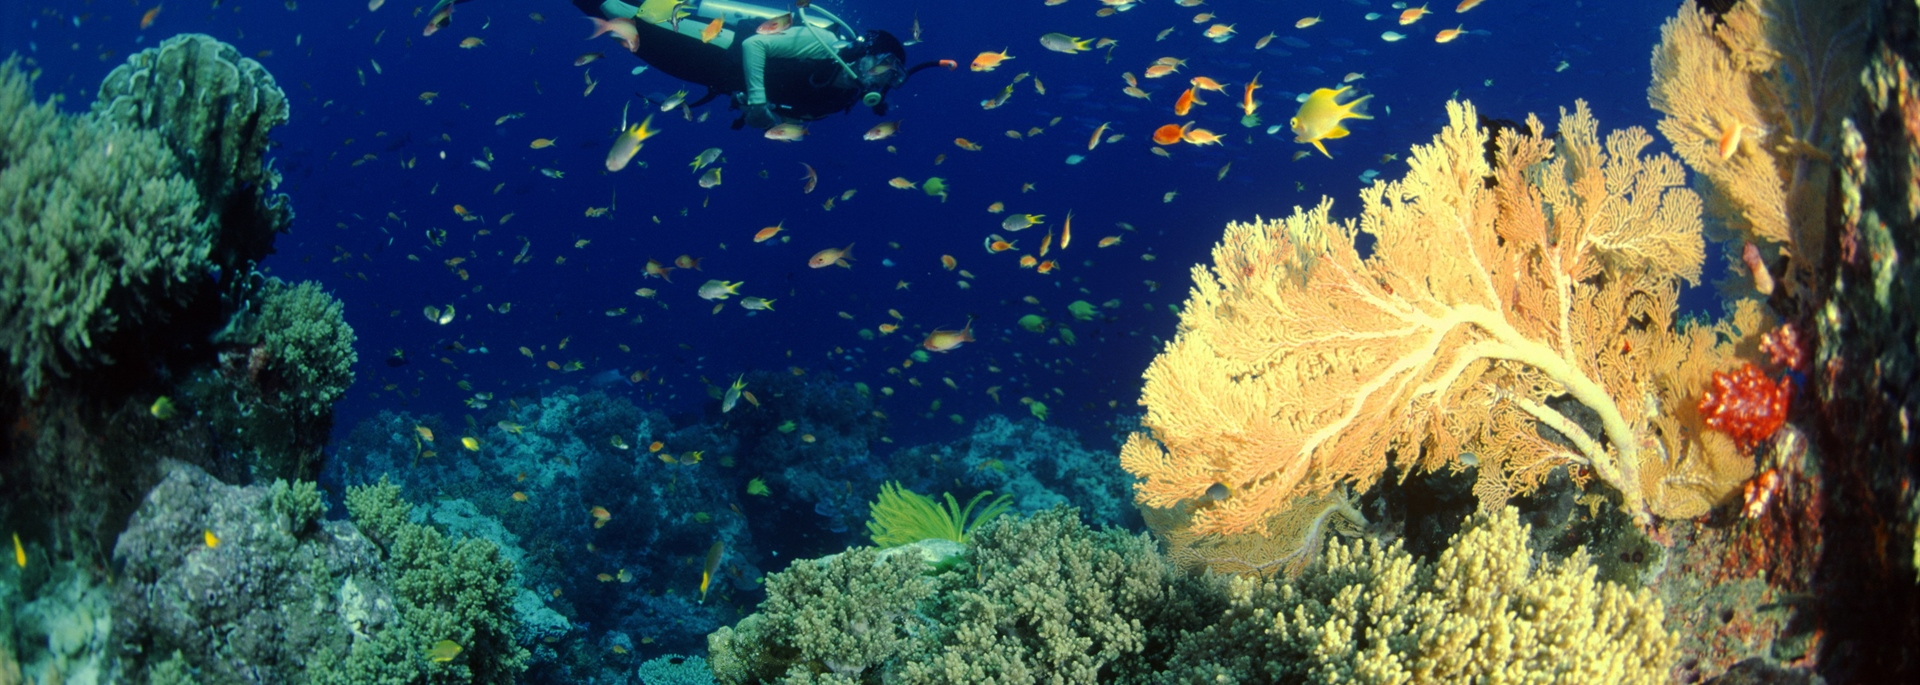 Coral Reef & Diver